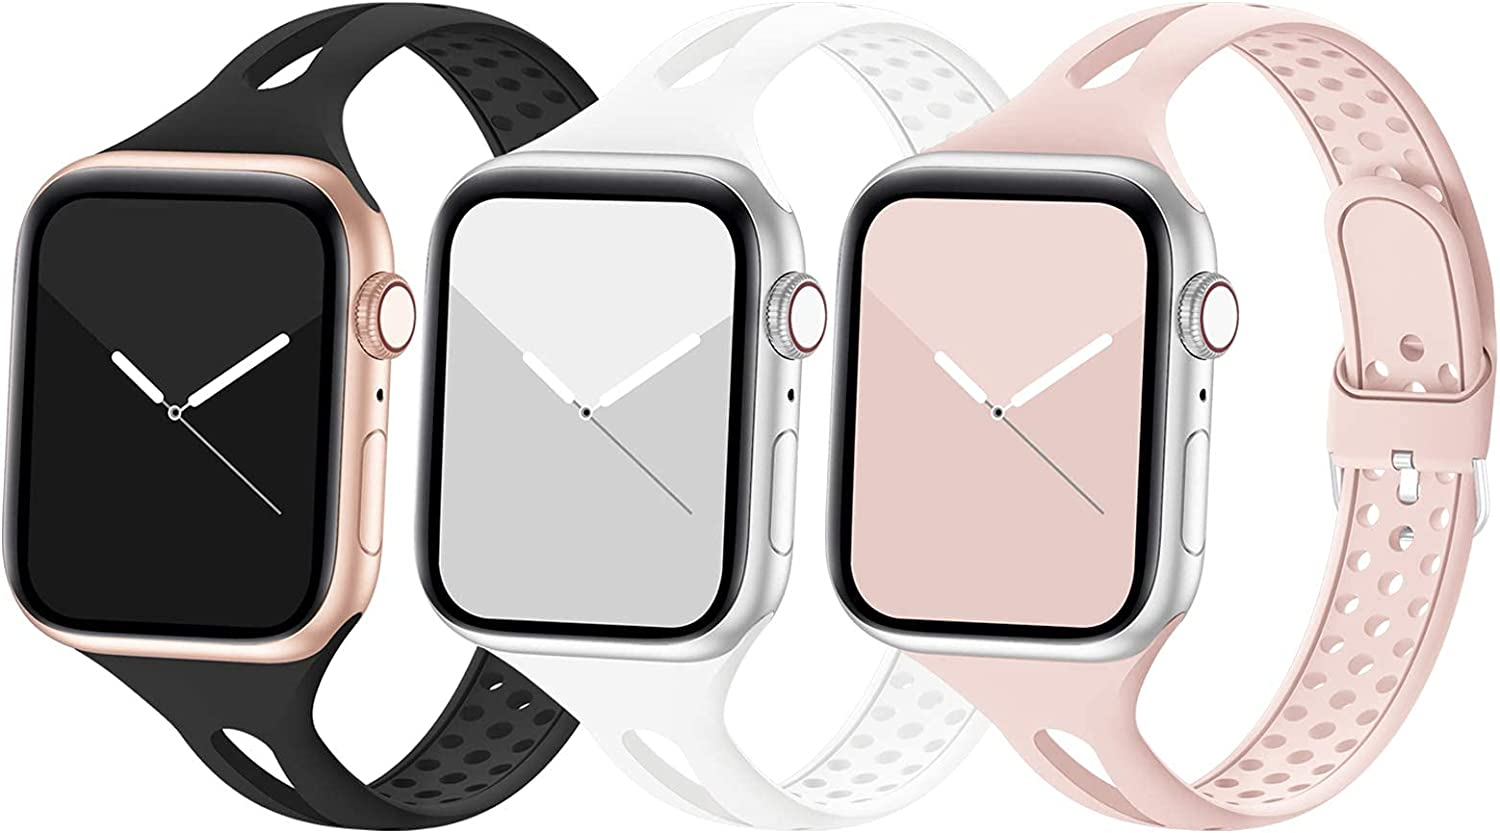 Bandiction Compatible with Apple Watch Band 42mm 44mm, Breathable Women Narrow Slim iWatch Bands Silicone Sport Band Replacement Strap Compatible for iWatch Series 6 SE 5 4 3 2 1, 3 Pack, 42/44mm